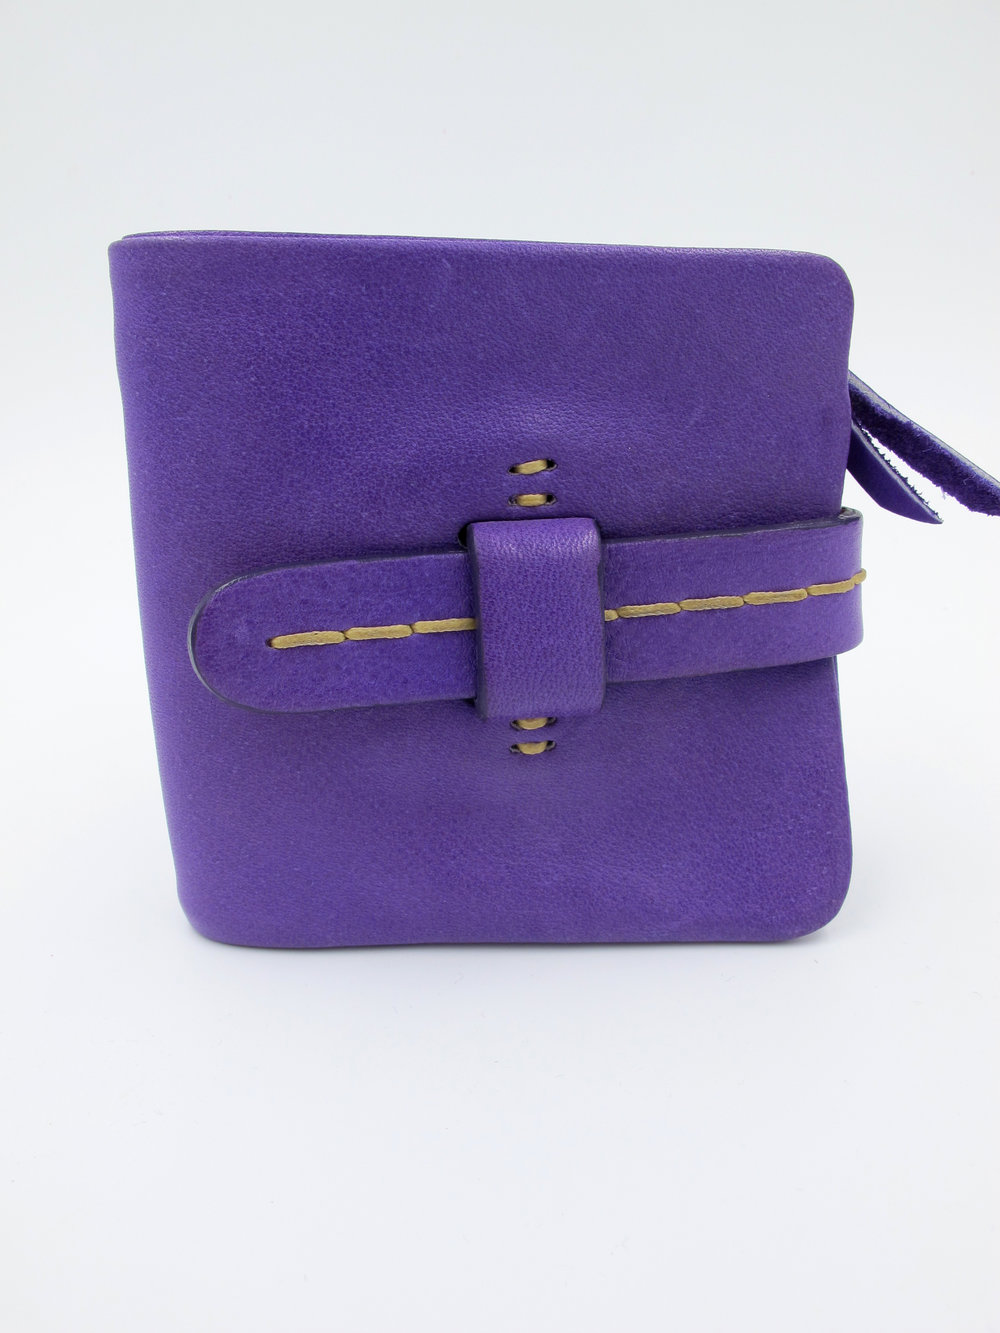 British made leather accessories handmade by Blondie Mania